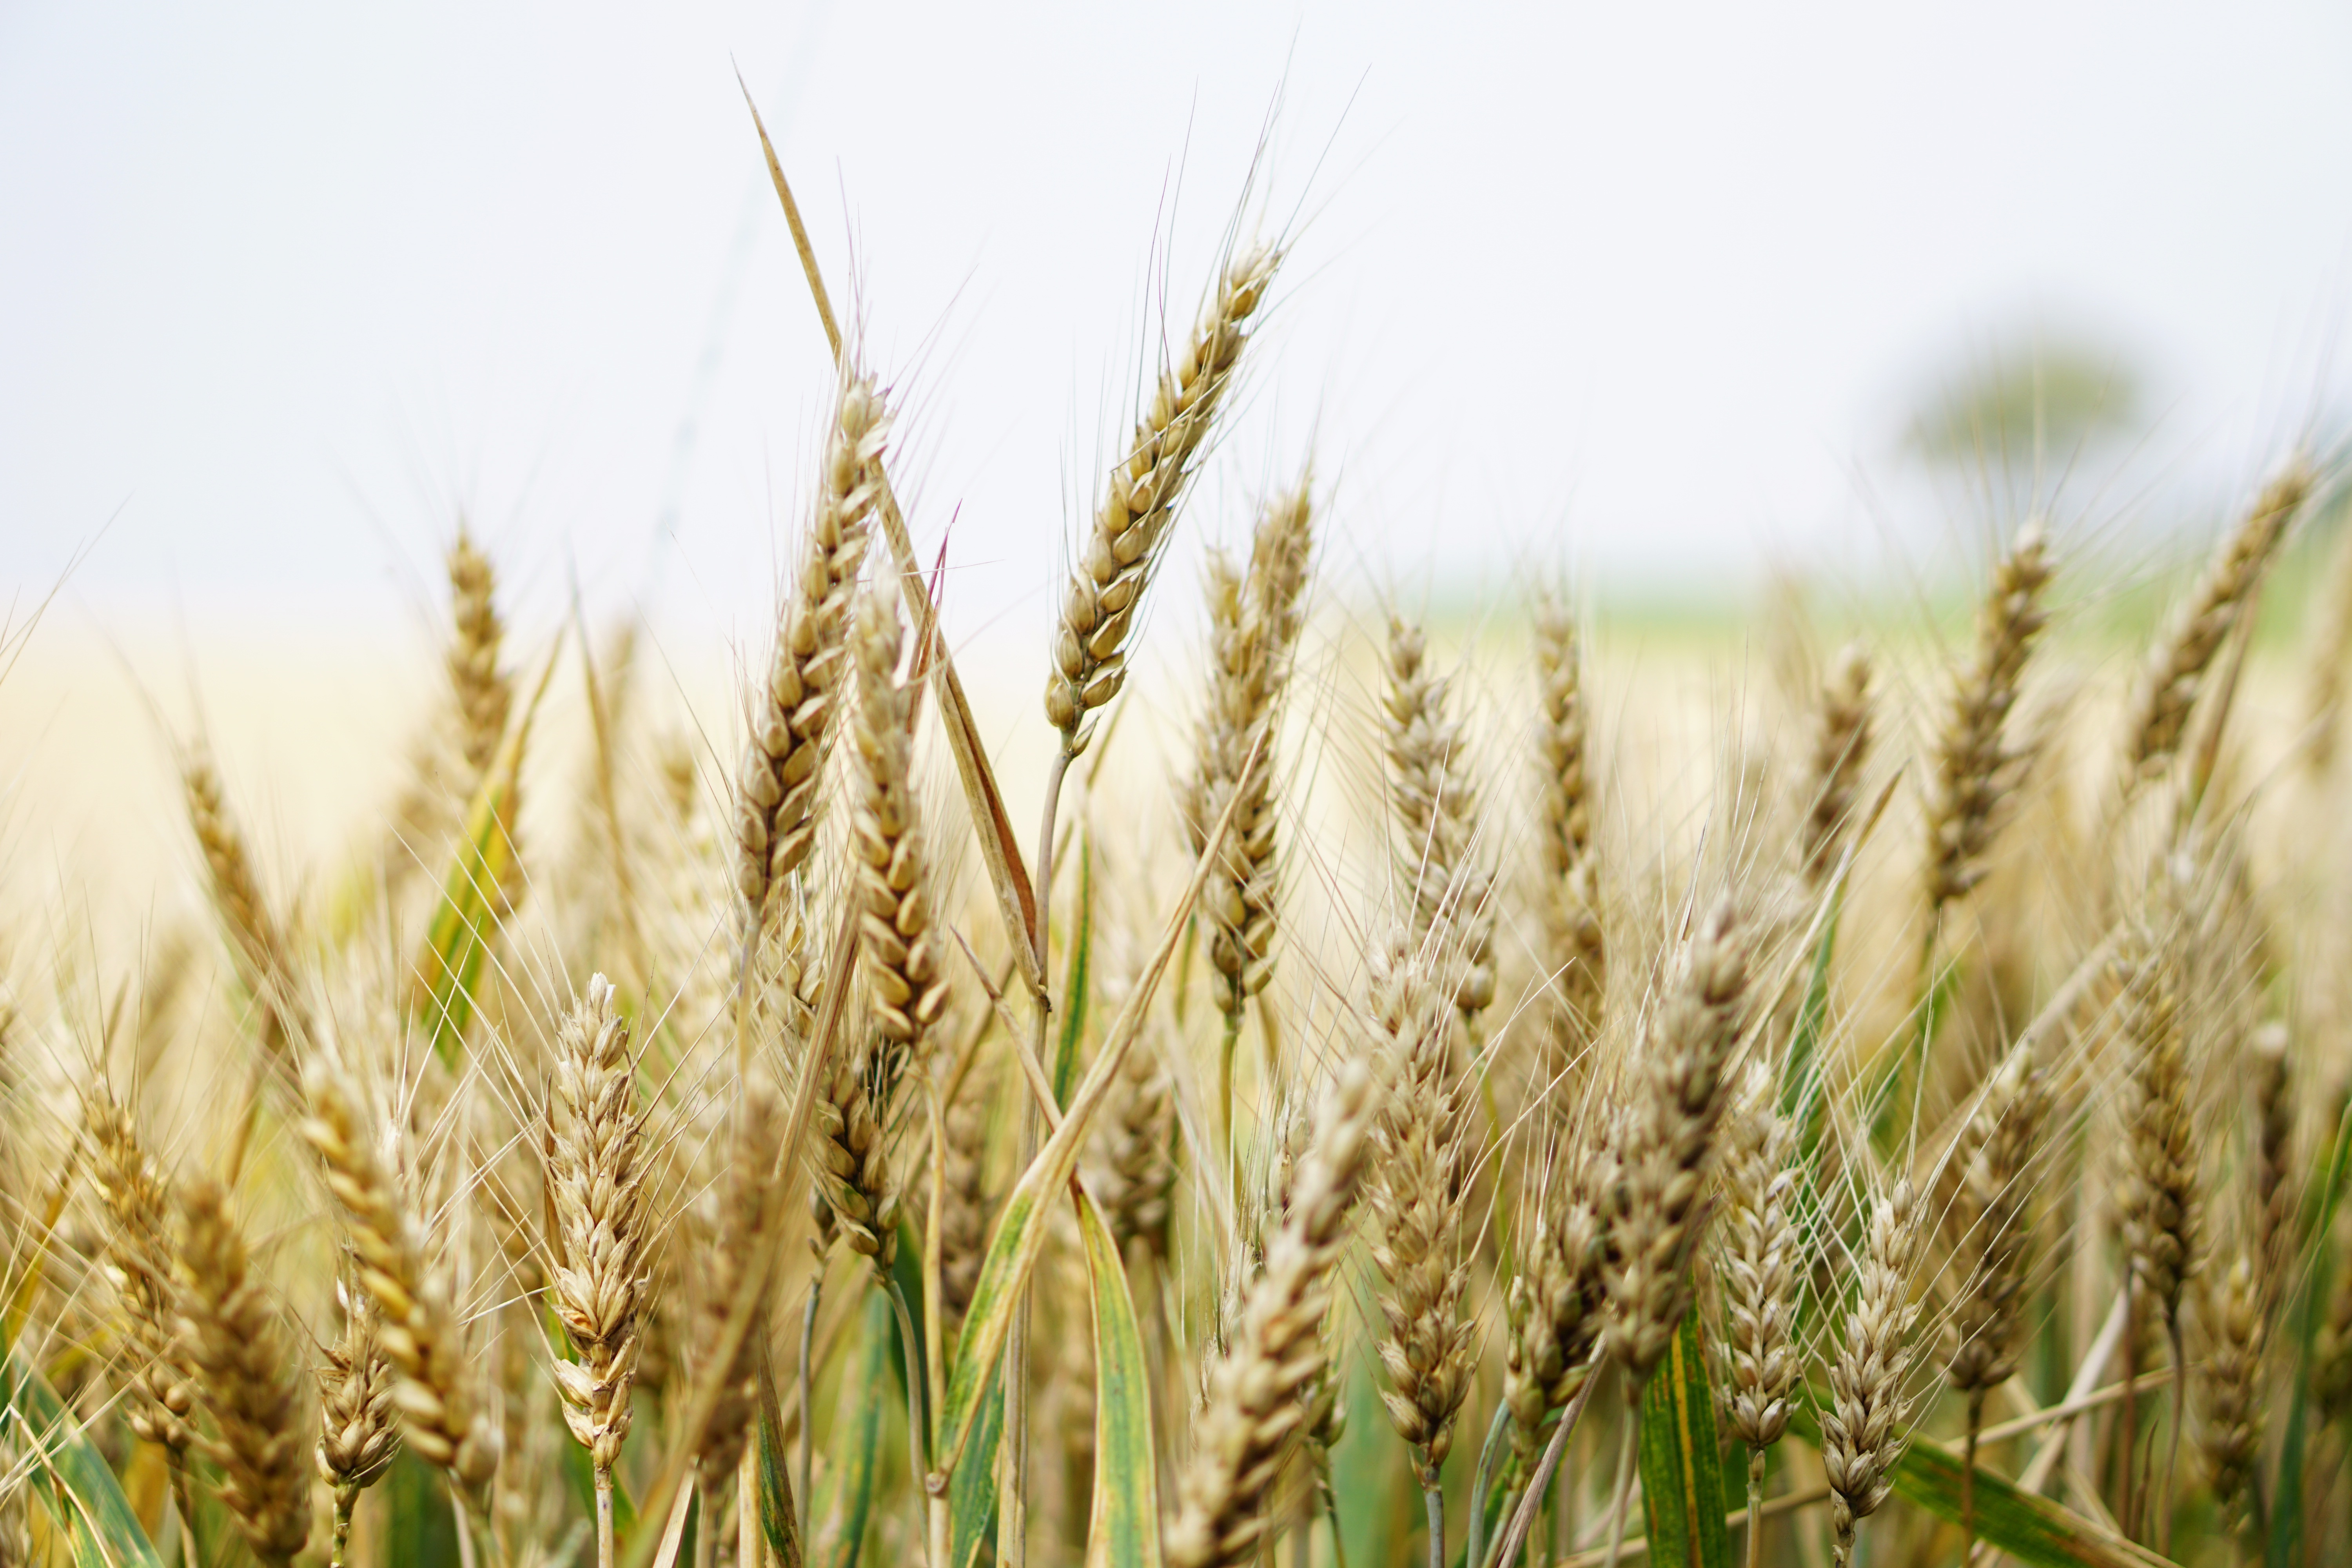 Free Fall Wallpaper Apps 1000 Engaging Wheat Field Photos 183 Pexels 183 Free Stock Photos